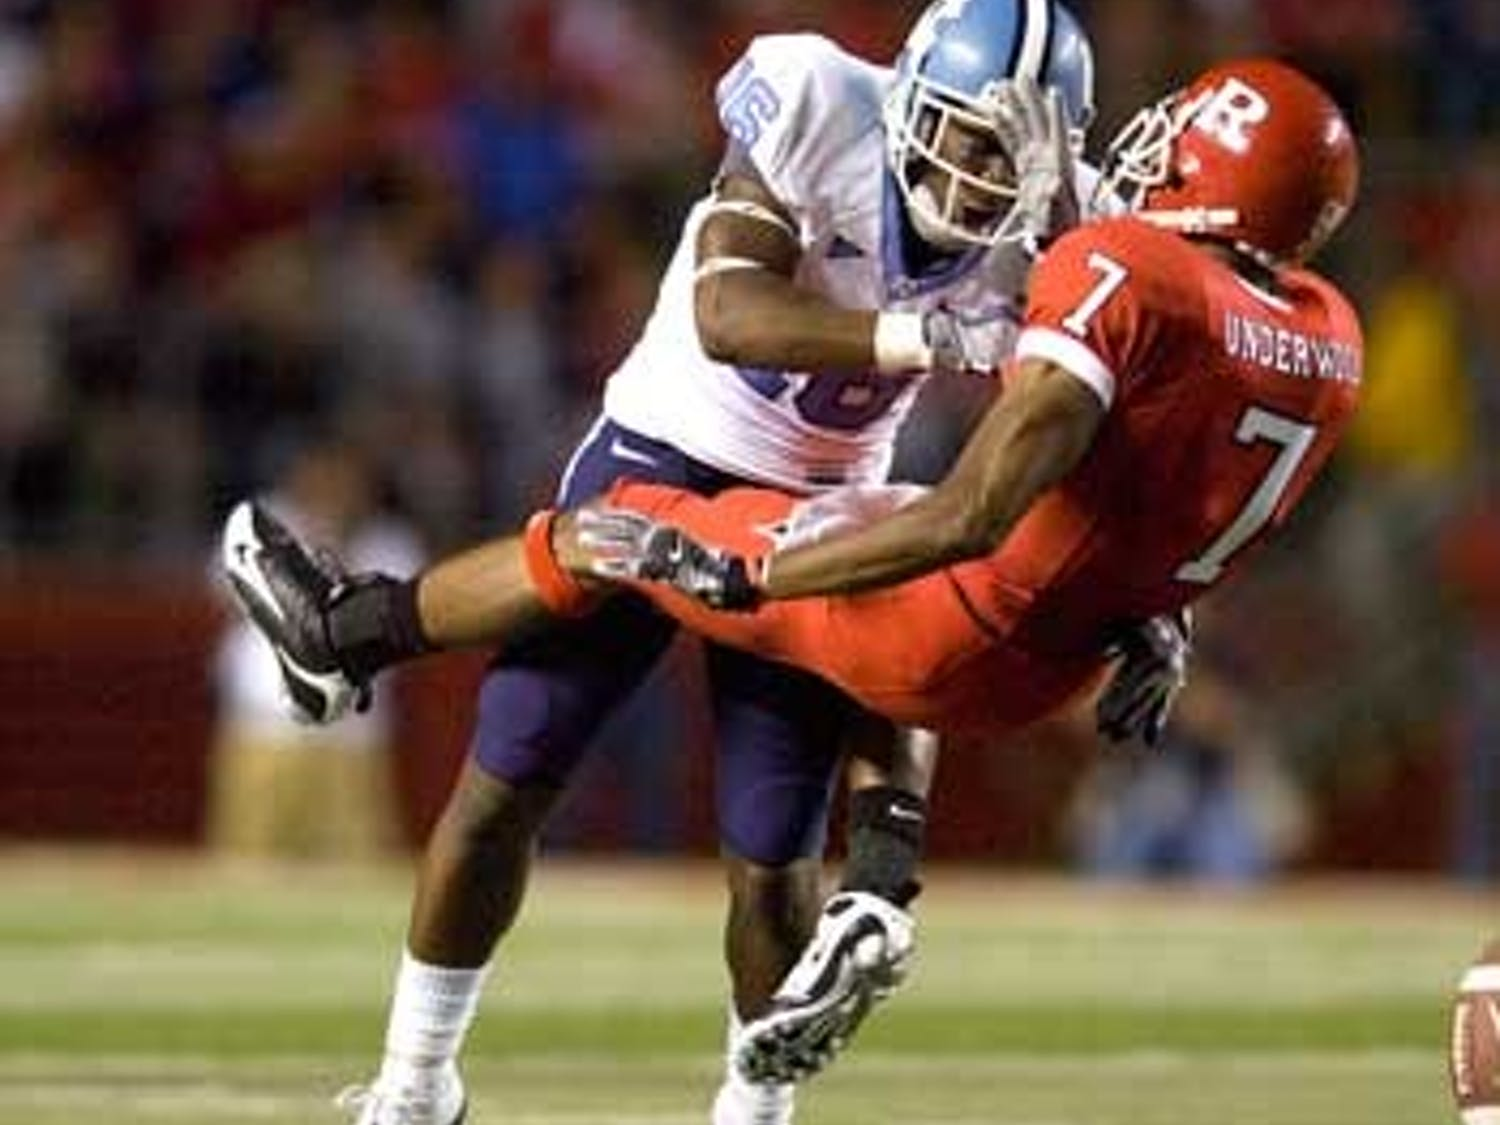 UNC corner Kendric Burney (16) managed a big hit on Rutgers? Tiquan Underwood in Thursday?s game by not ?biting the cheese.?